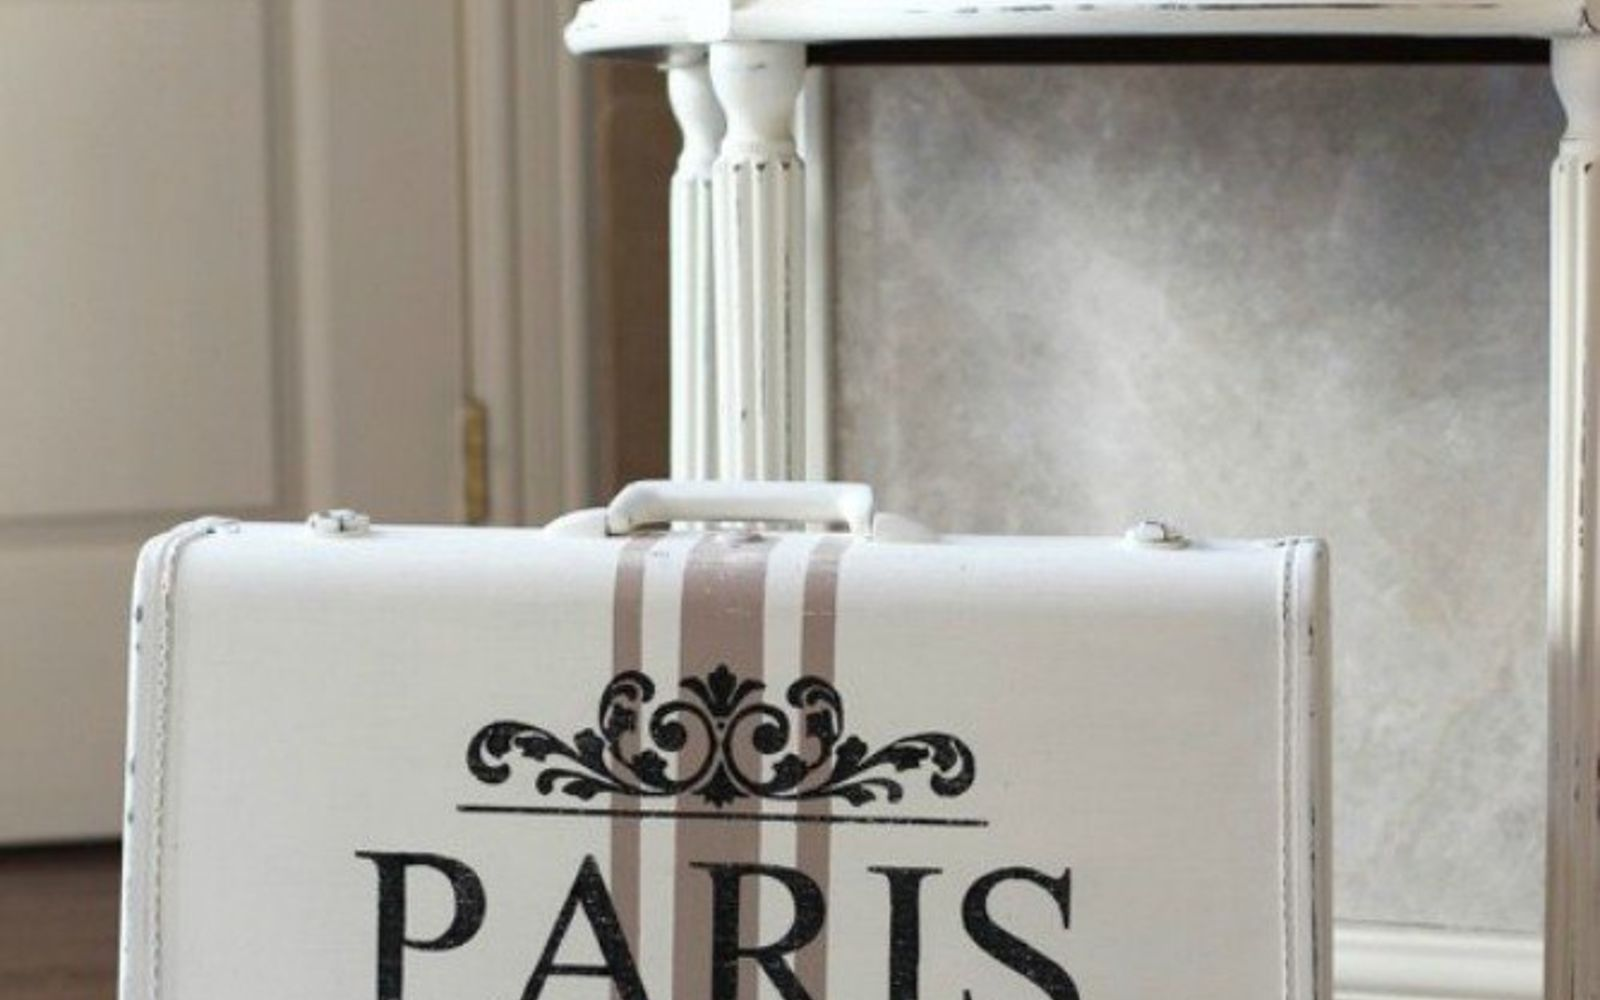 s don t throw out your old suitcase before you see these 15 clever ideas, Use it for your home decor